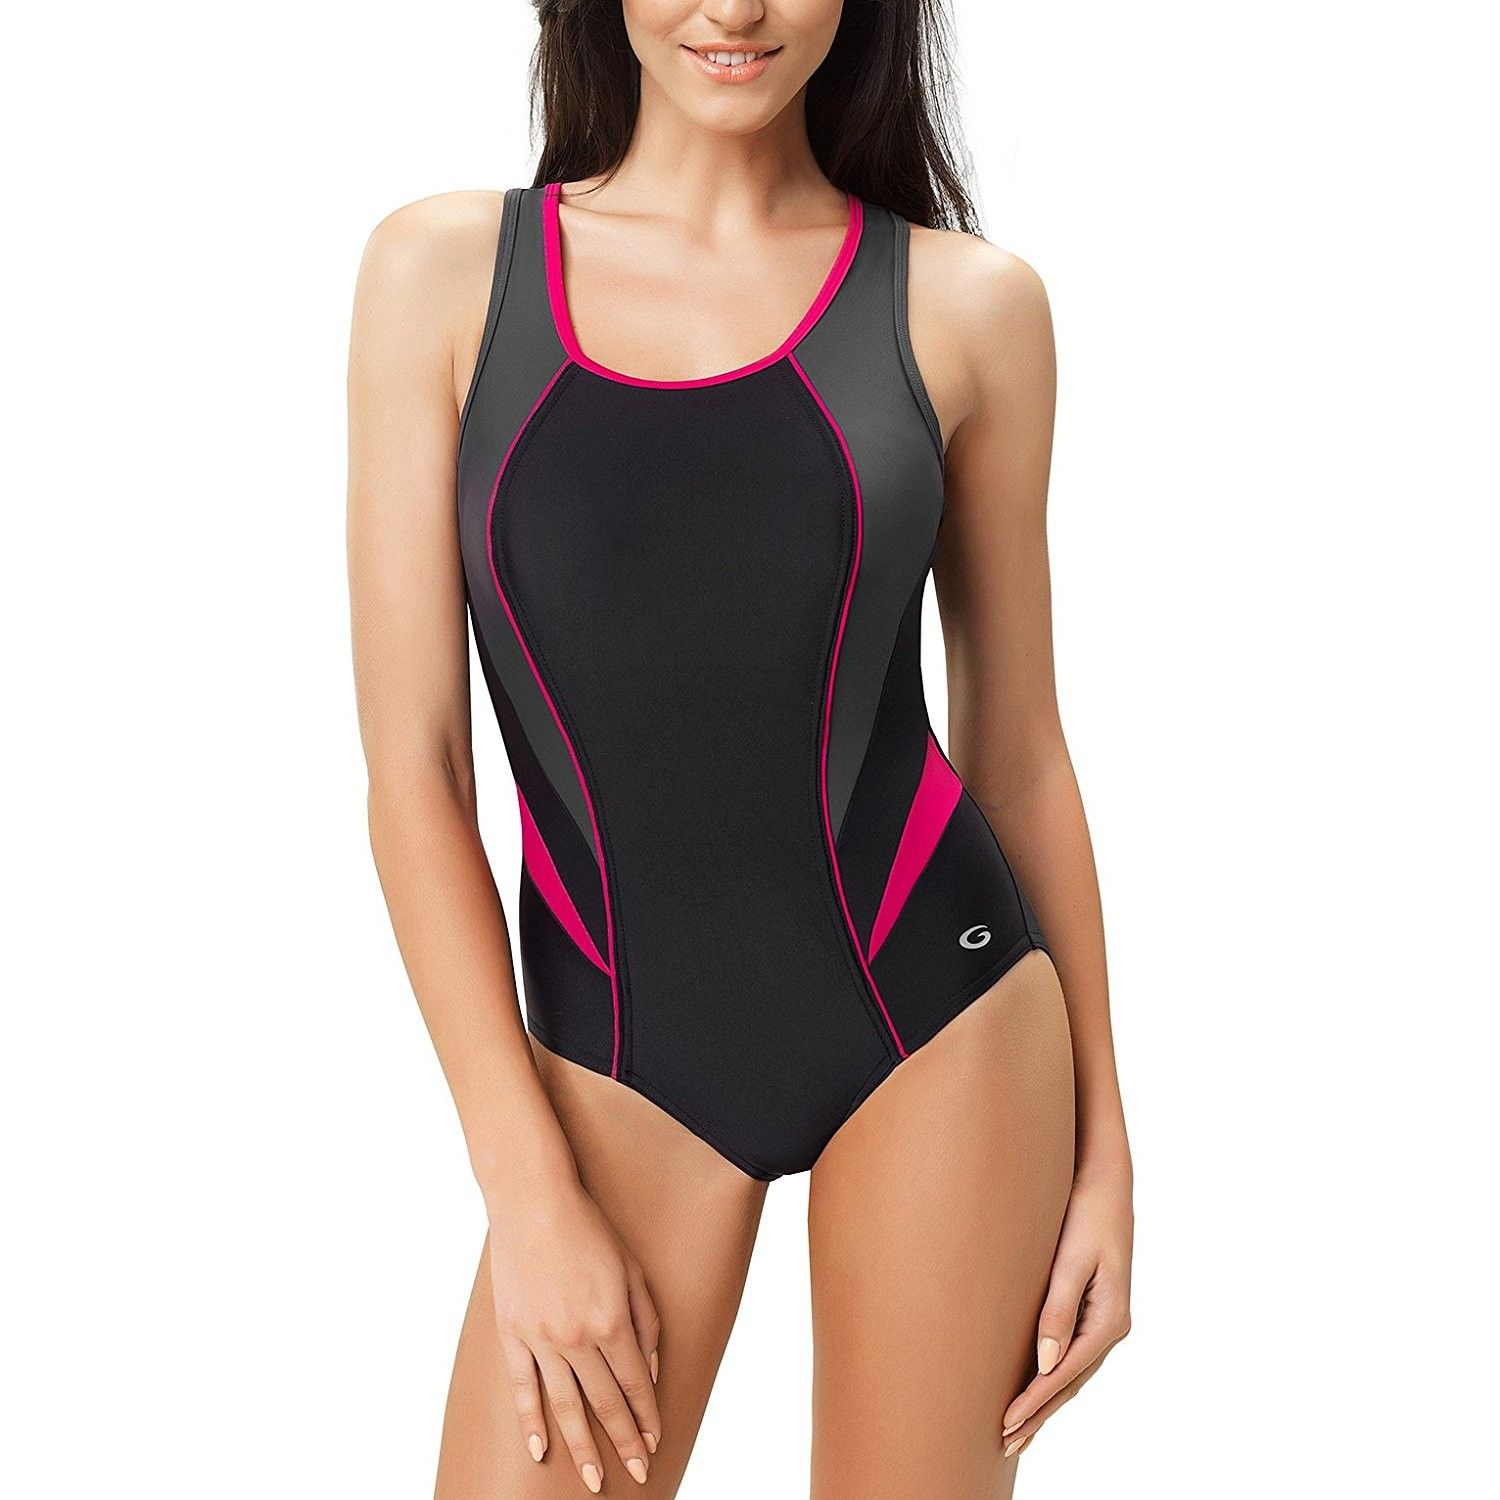 e892c2de9d Women's Ivana One Piece Padded Athletic Swimsuit - black/graphite/fuchsia -  CC1887LTHIX,Women's Clothing, Swimsuits & Cover Ups, Racing #women  #clothing ...